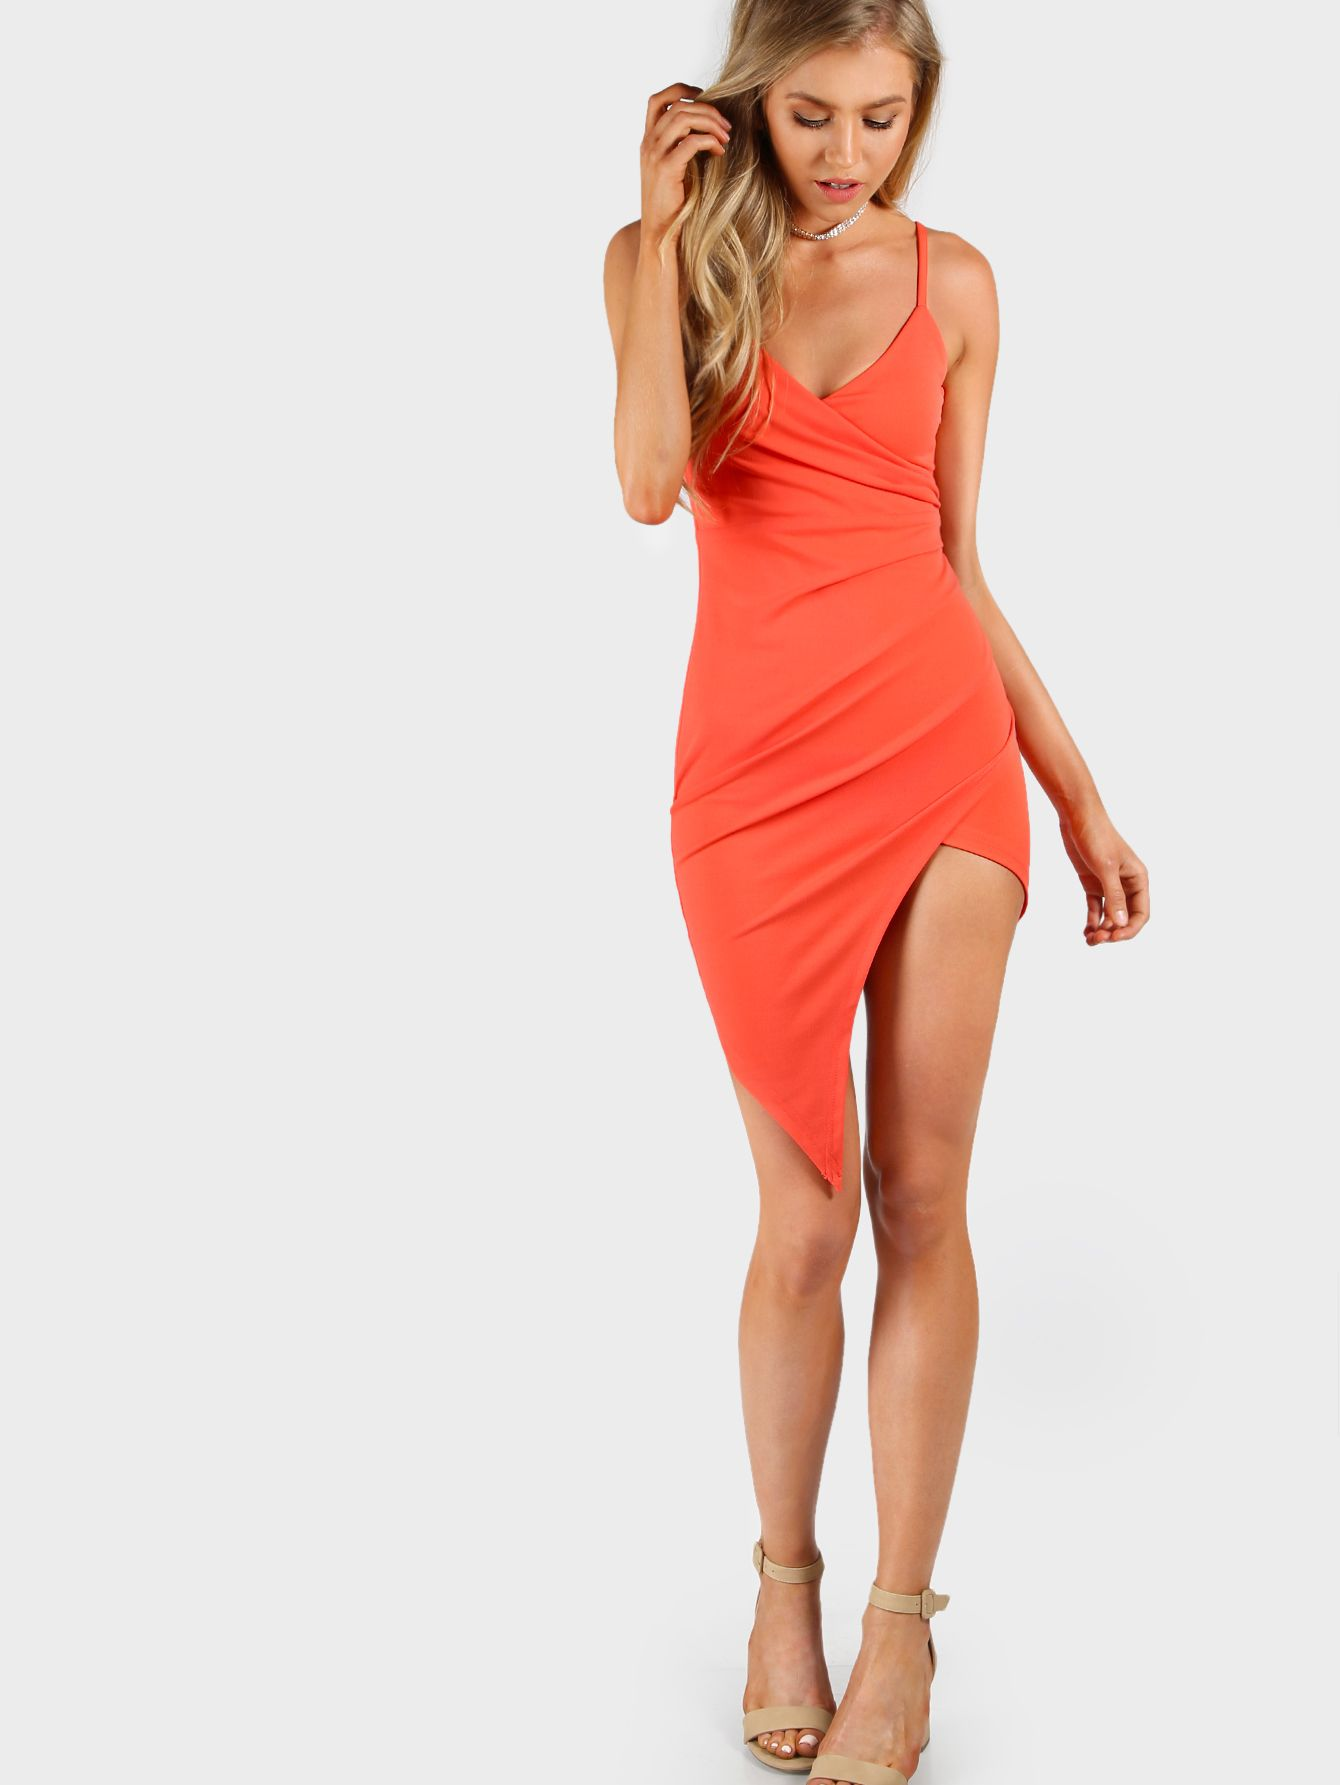 c041a7db5be6 Shop Asymmetrical Overlap Cami Bodycon Dress online. SheIn offers  Asymmetrical Overlap Cami Bodycon Dress & more to fit your fashionable  needs.